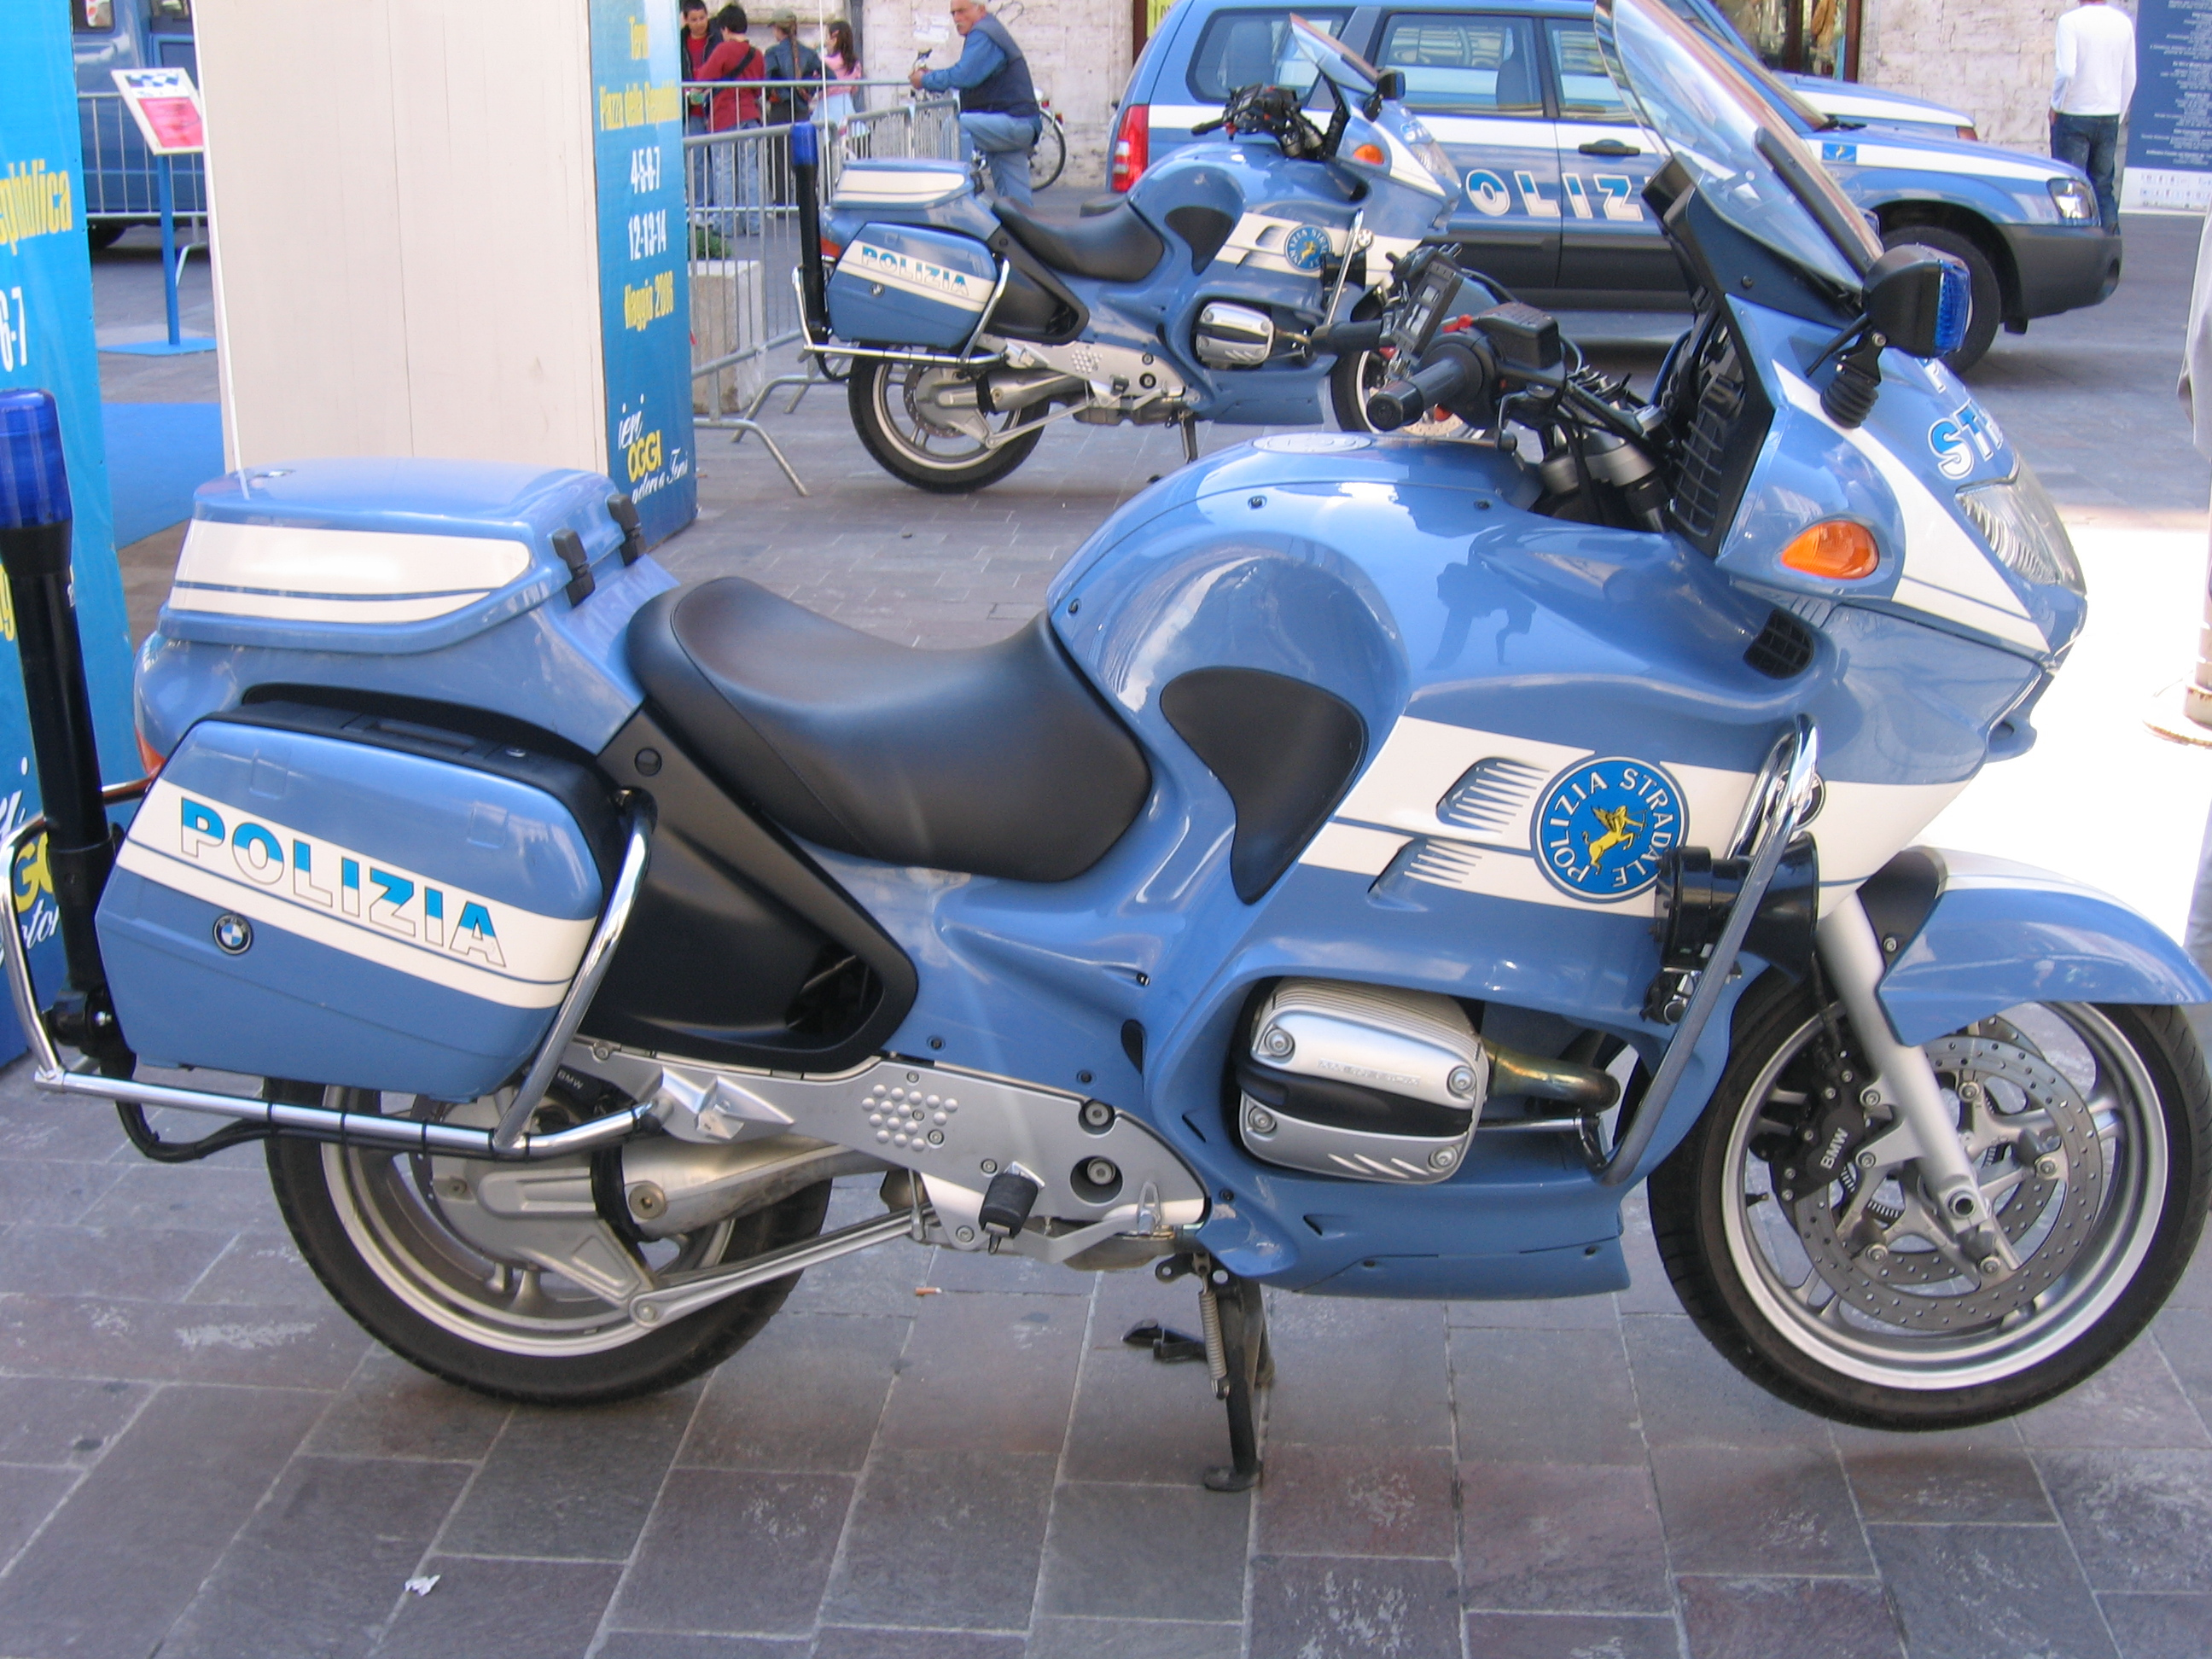 BMW R1150RT 2006 images #28441